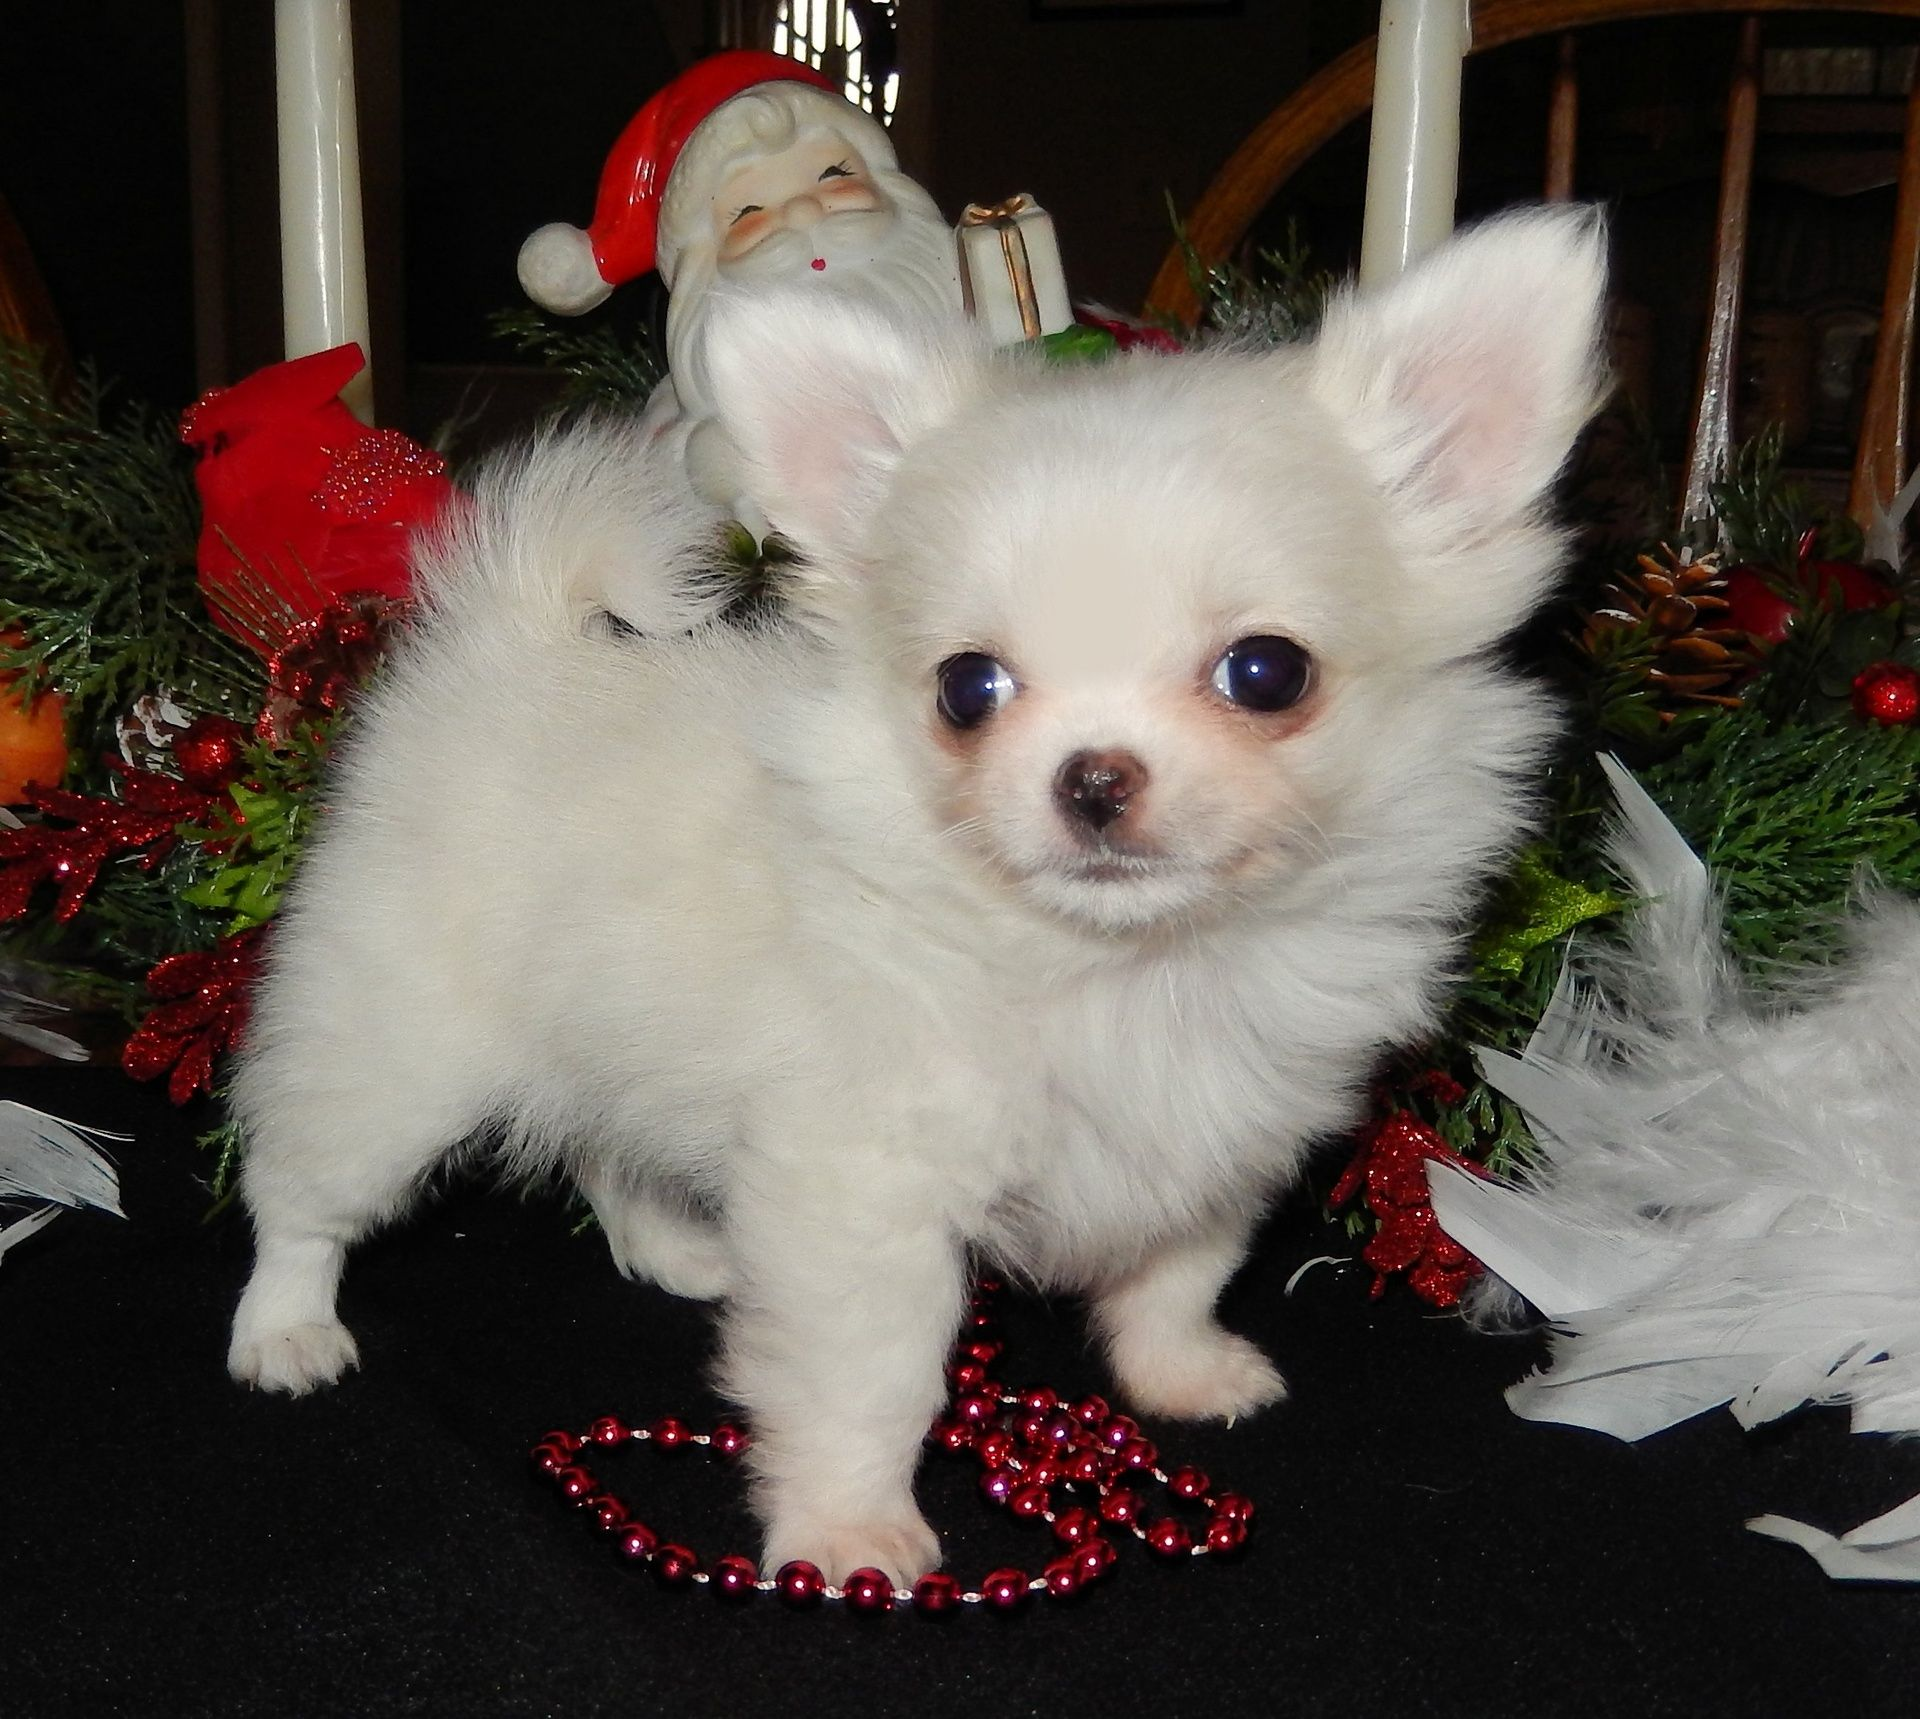 Shichon puppies for sale in indiana - Chihuahua Puppies For Sale North Indiana Chicago Illinois